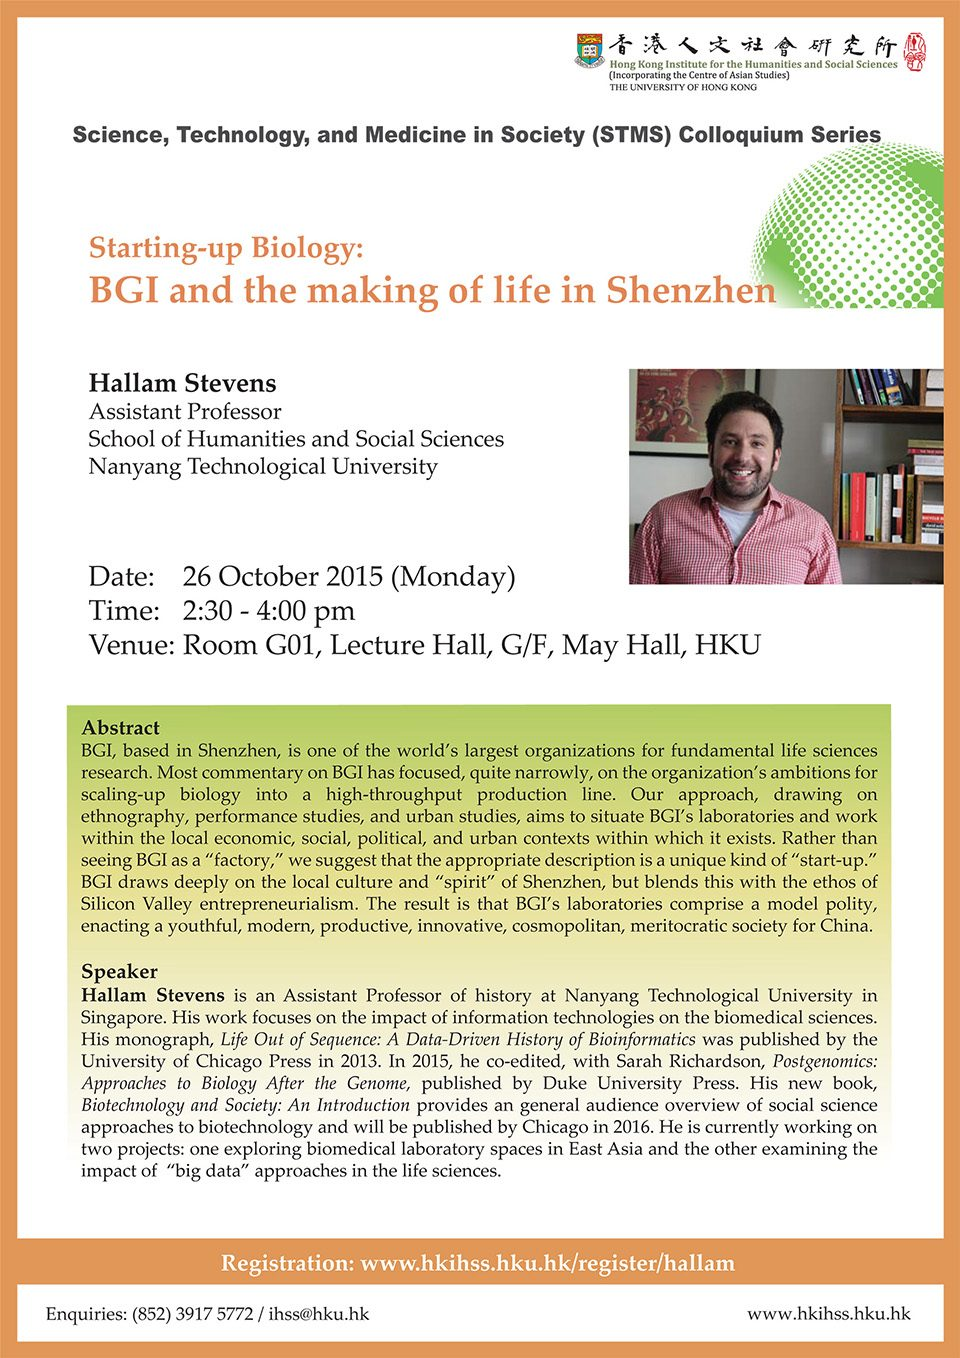 "STMS Colloquium Series Lecture on ""Starting-up Biology: BGI and the making of life in Shenzhen"" by Professor Hallam Stevens (October 26, 2015)"